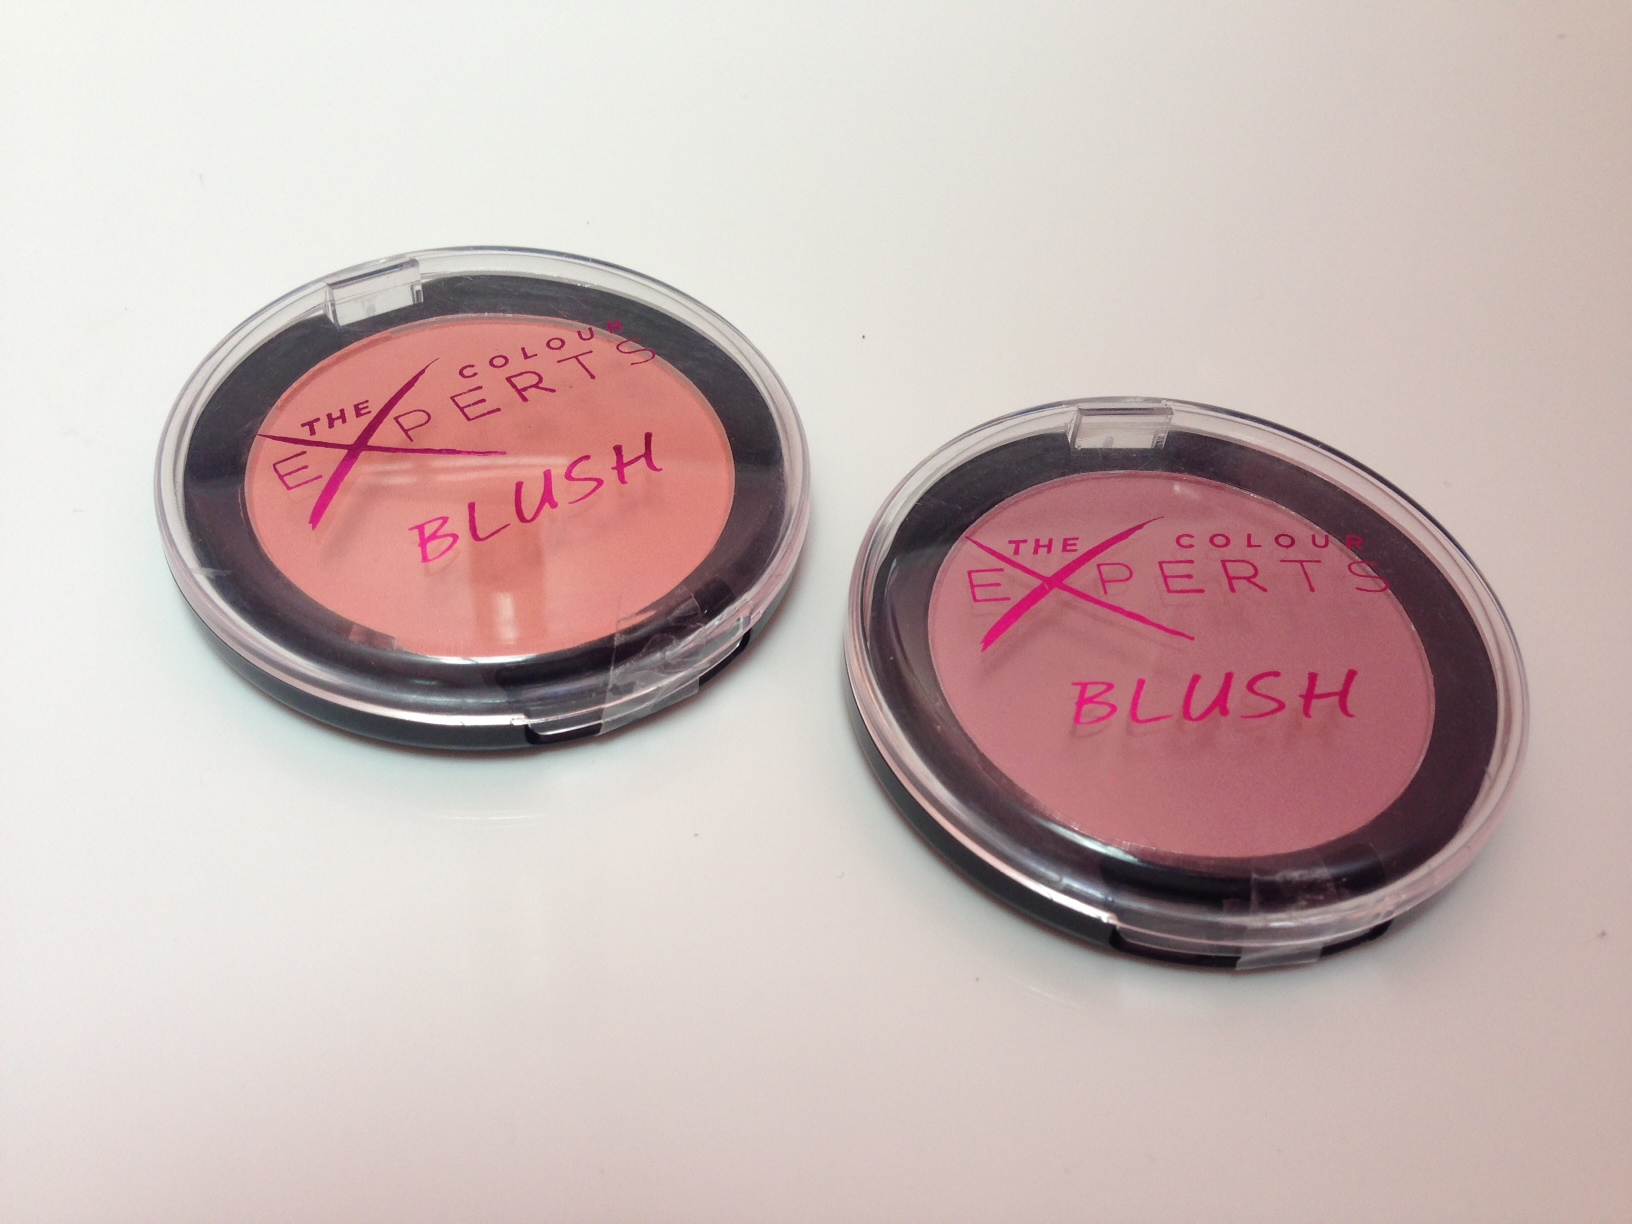 the-colour-experts-blush-1